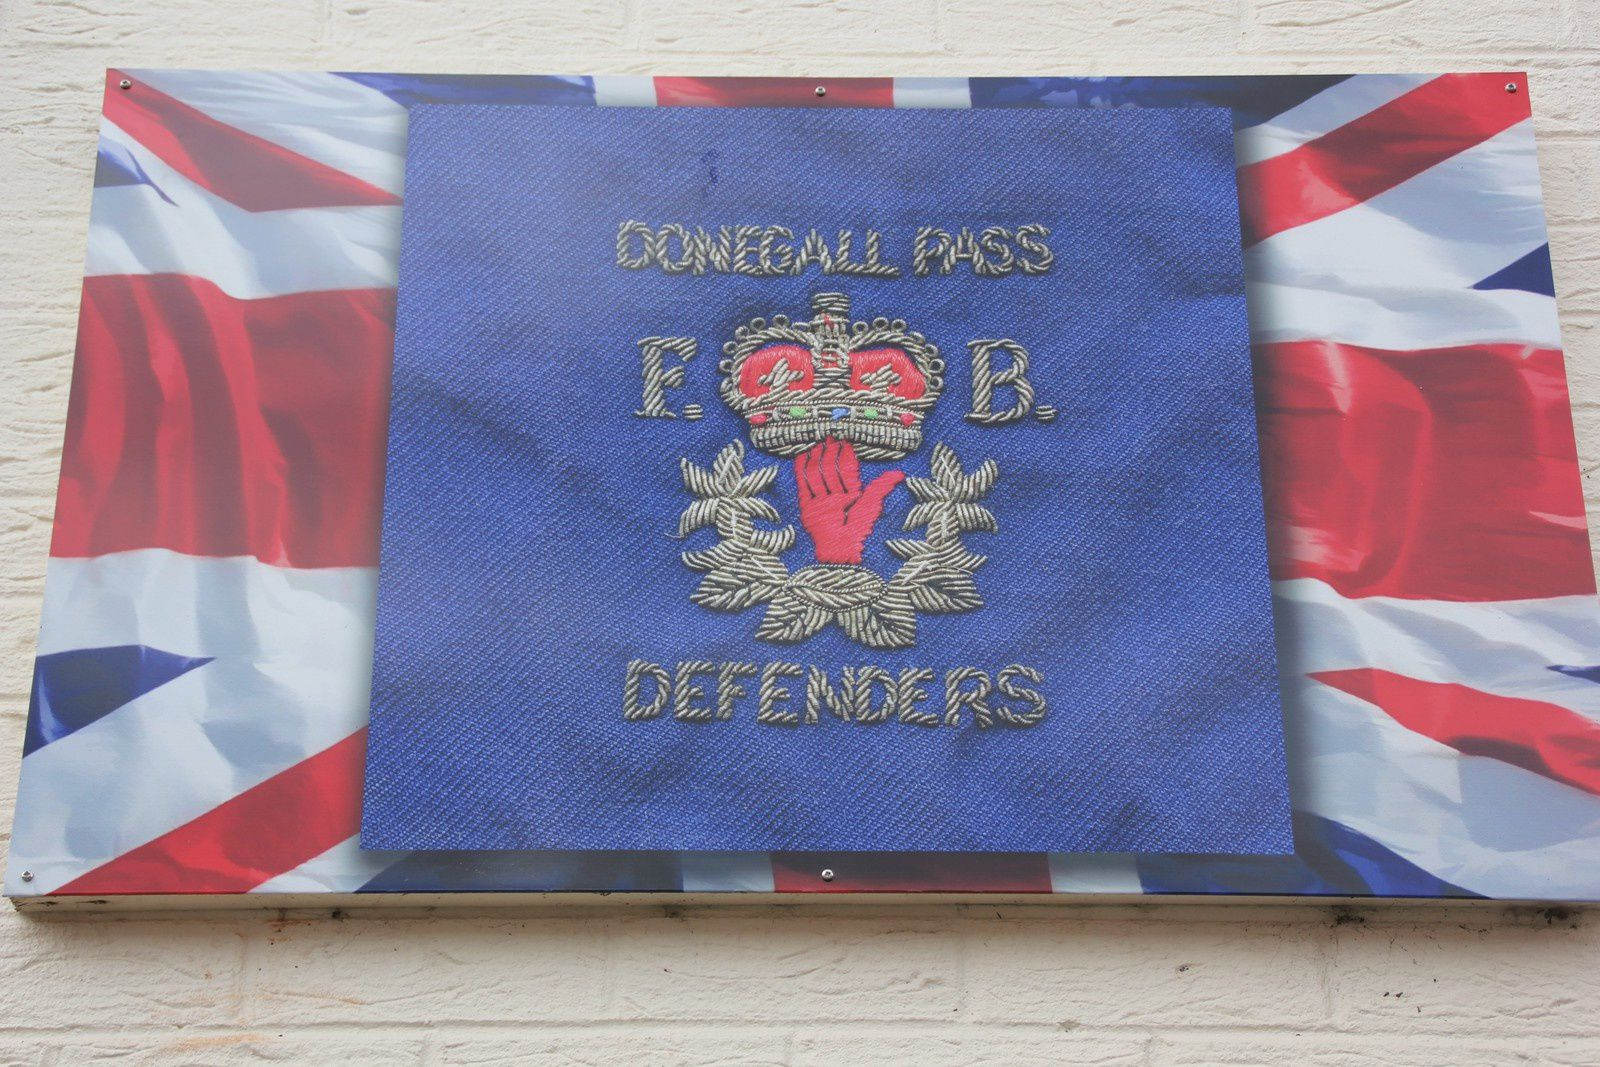 613) Donegall Pass, South Belfast